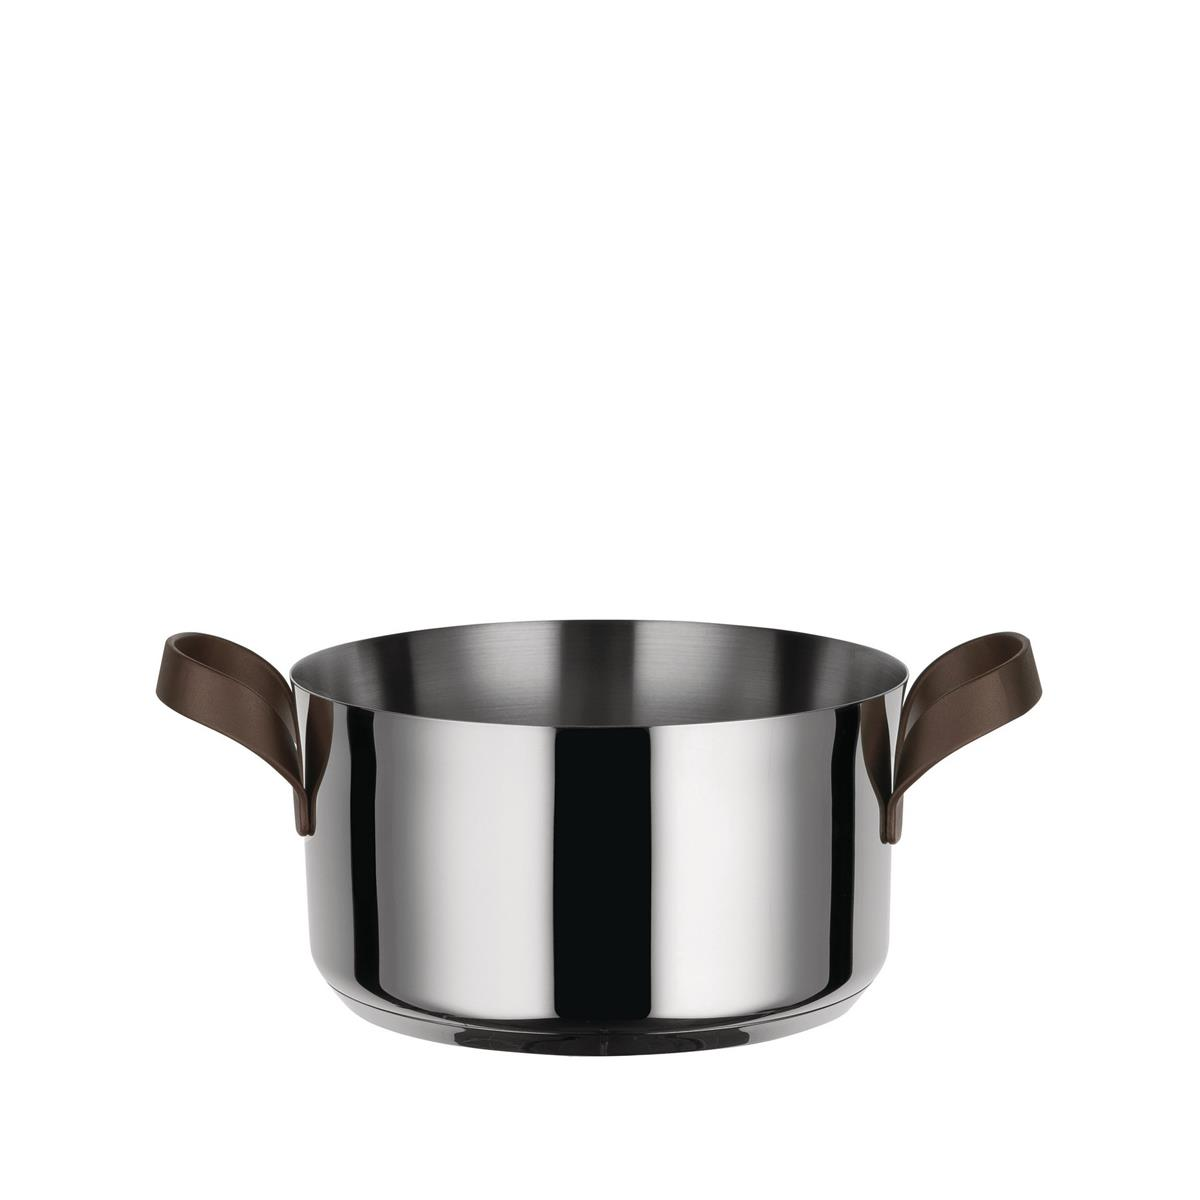 Alessi-edo Casserole with two handles in 18/10 stainless steel suitable for induction